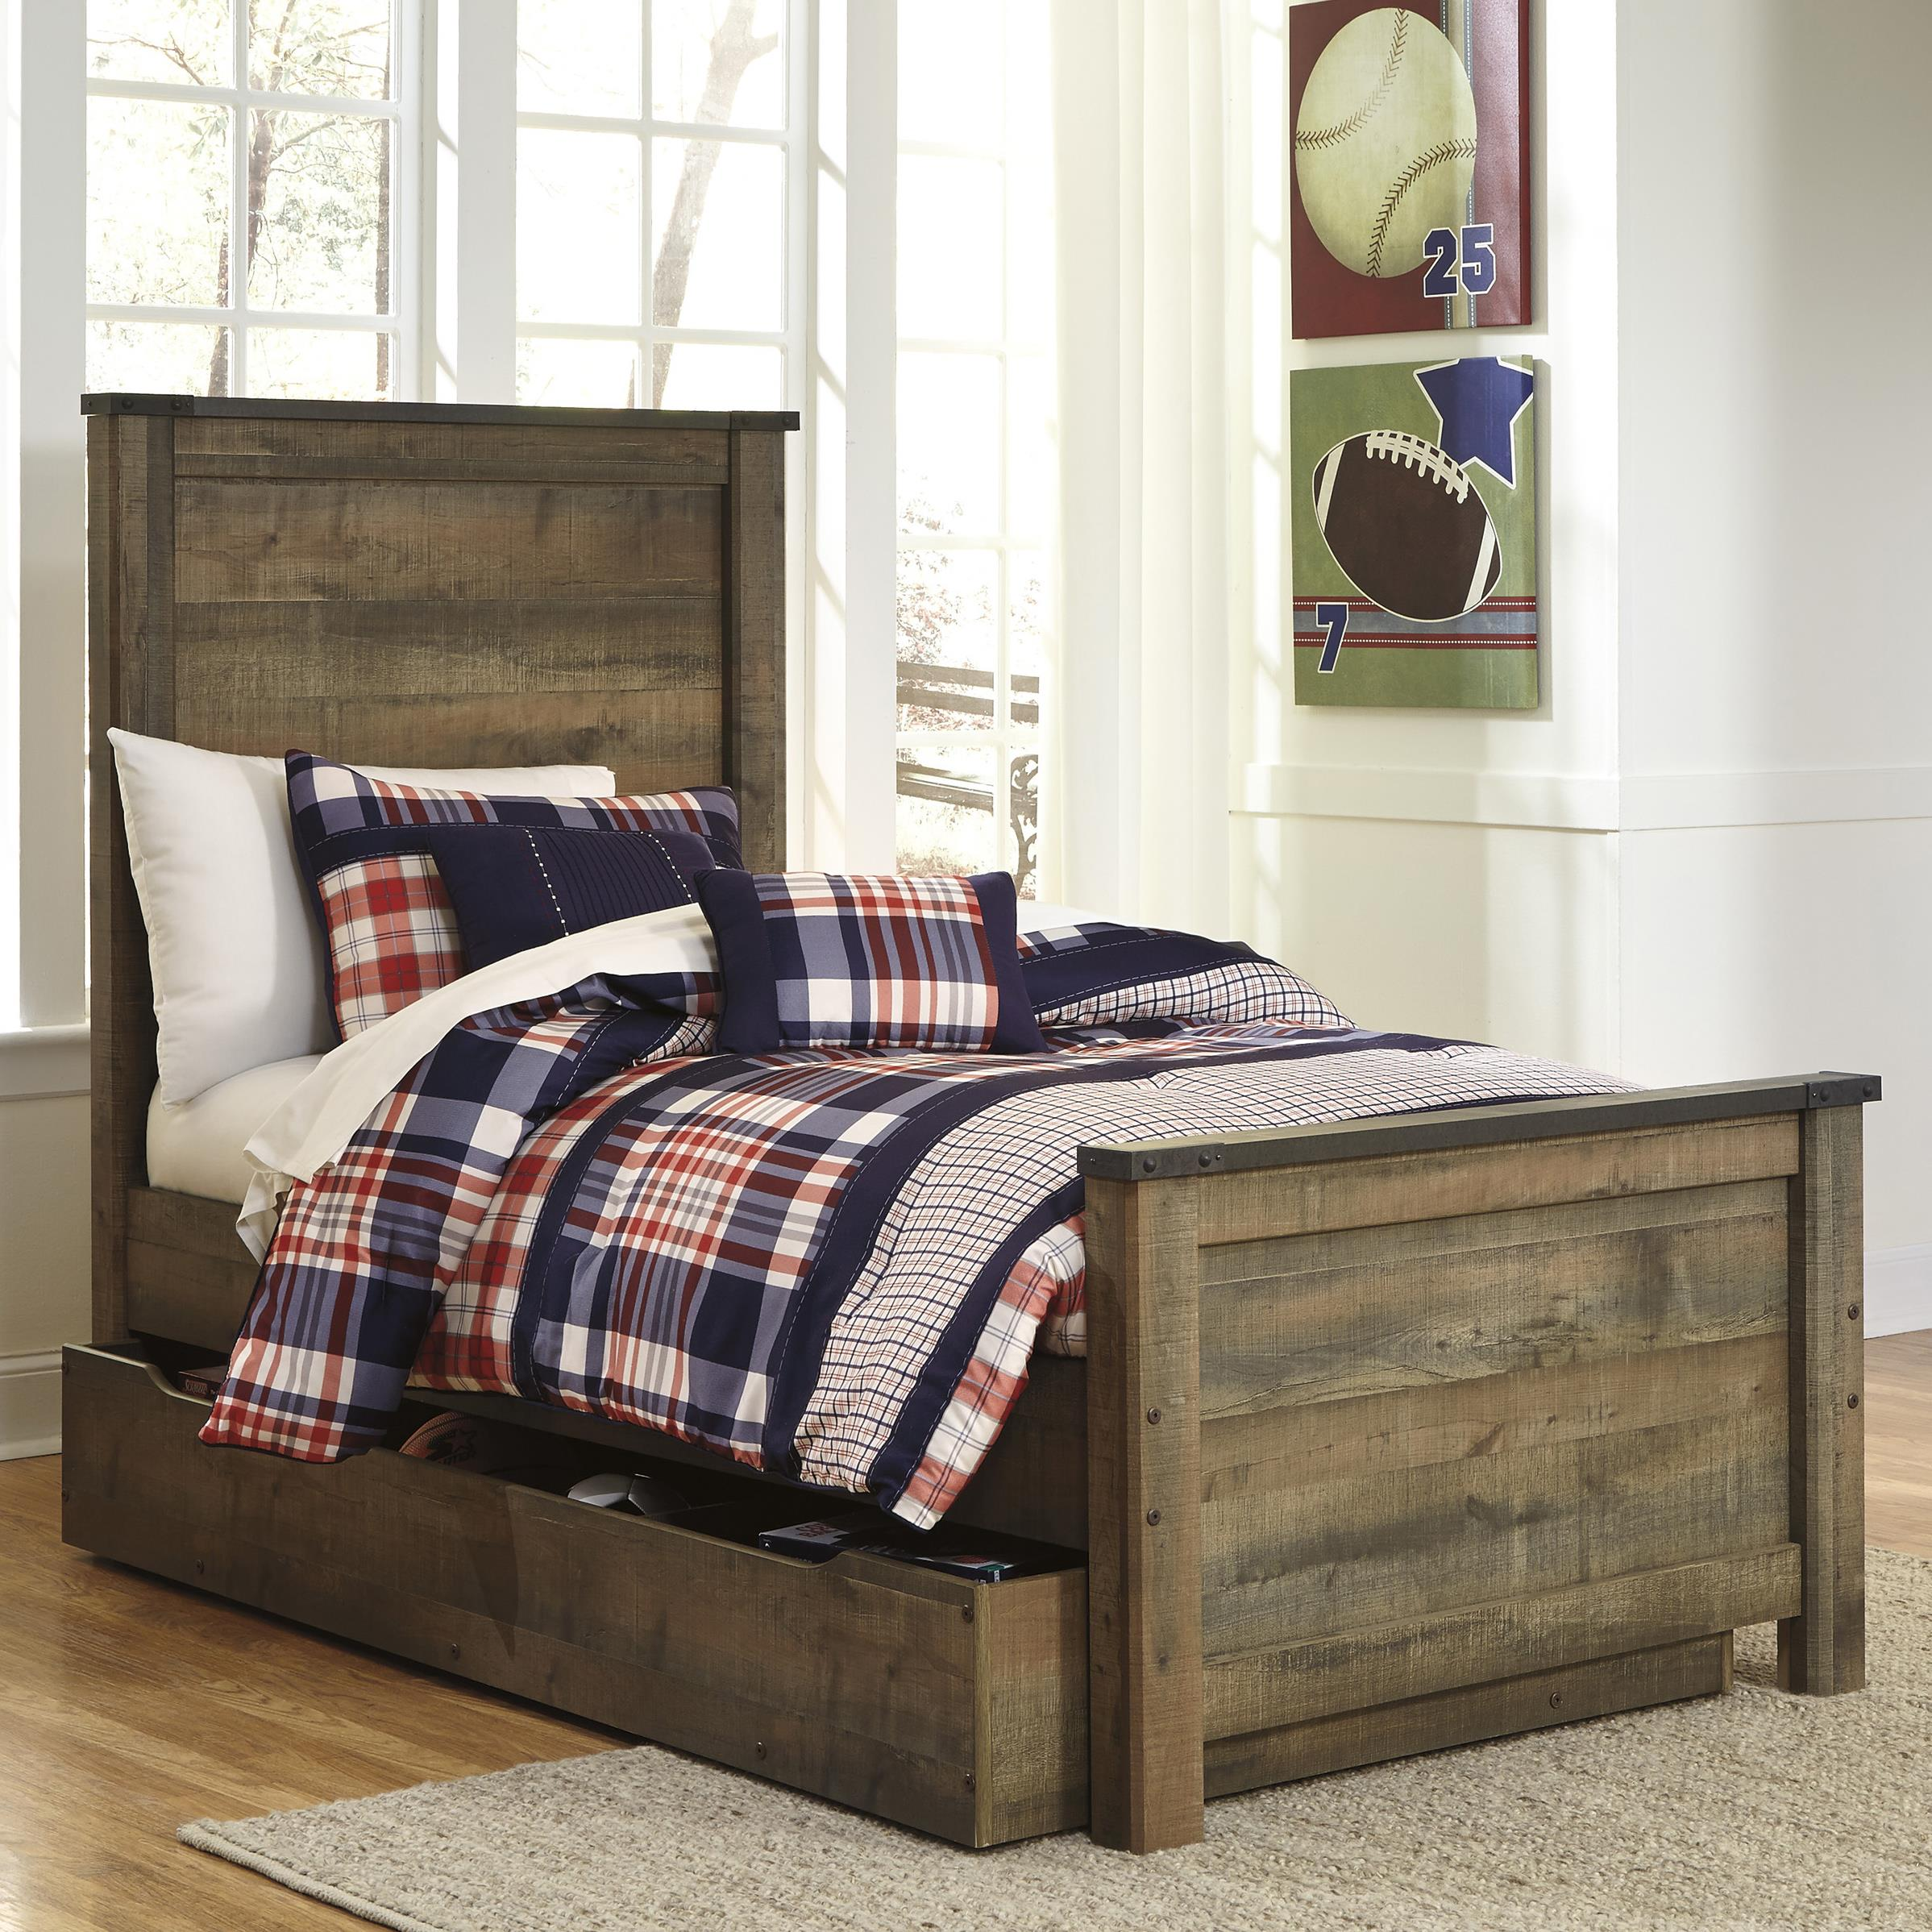 Rustic Look Twin Panel Bed With Under Bed Storage Trundle